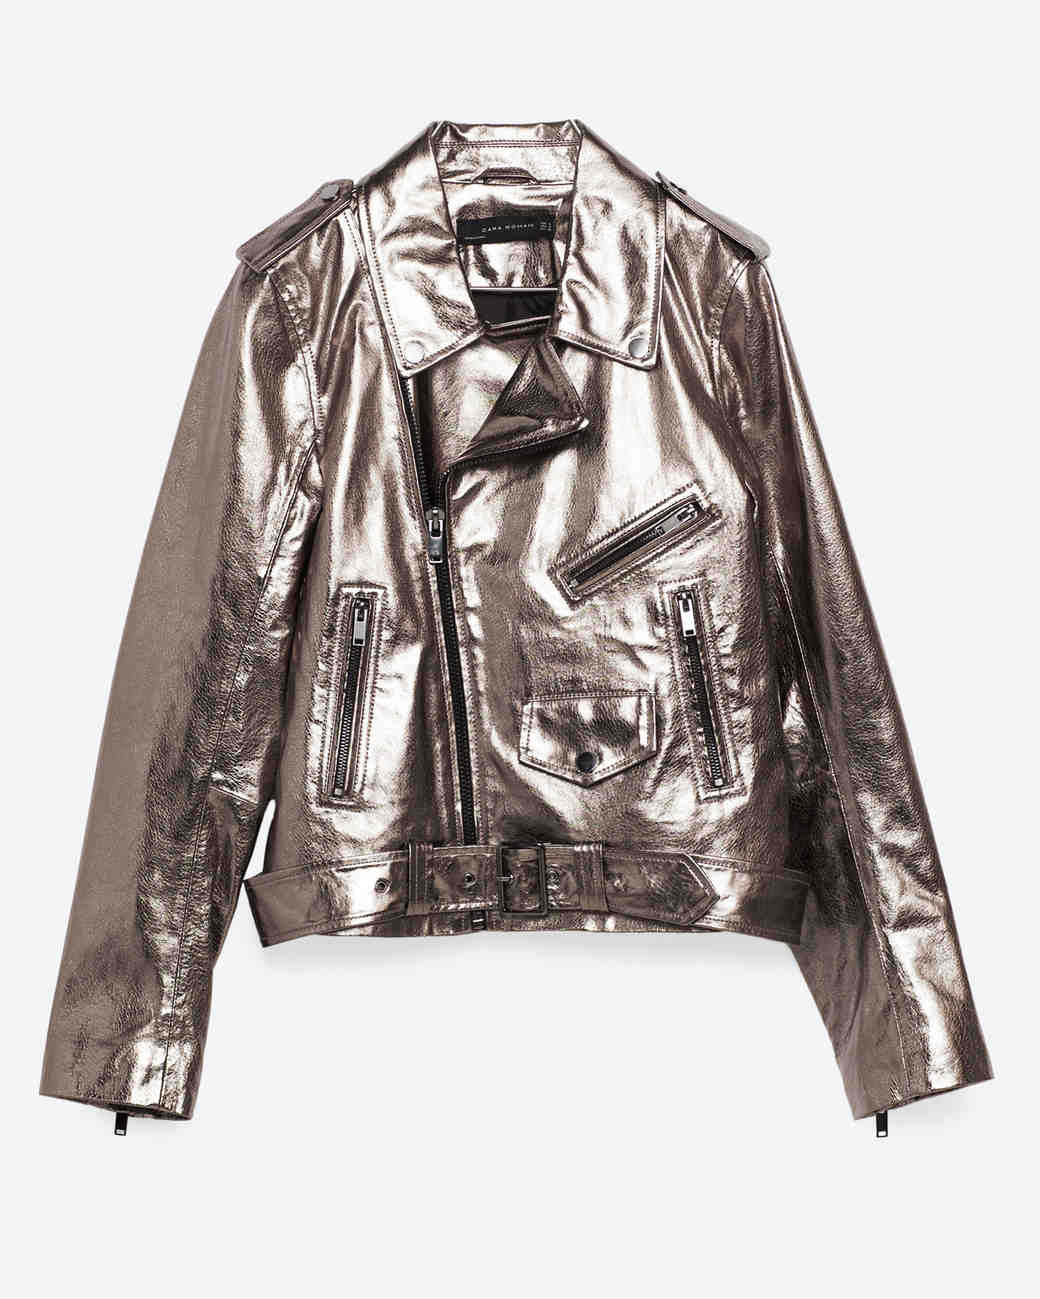 Zara Metallic Leather Jacket